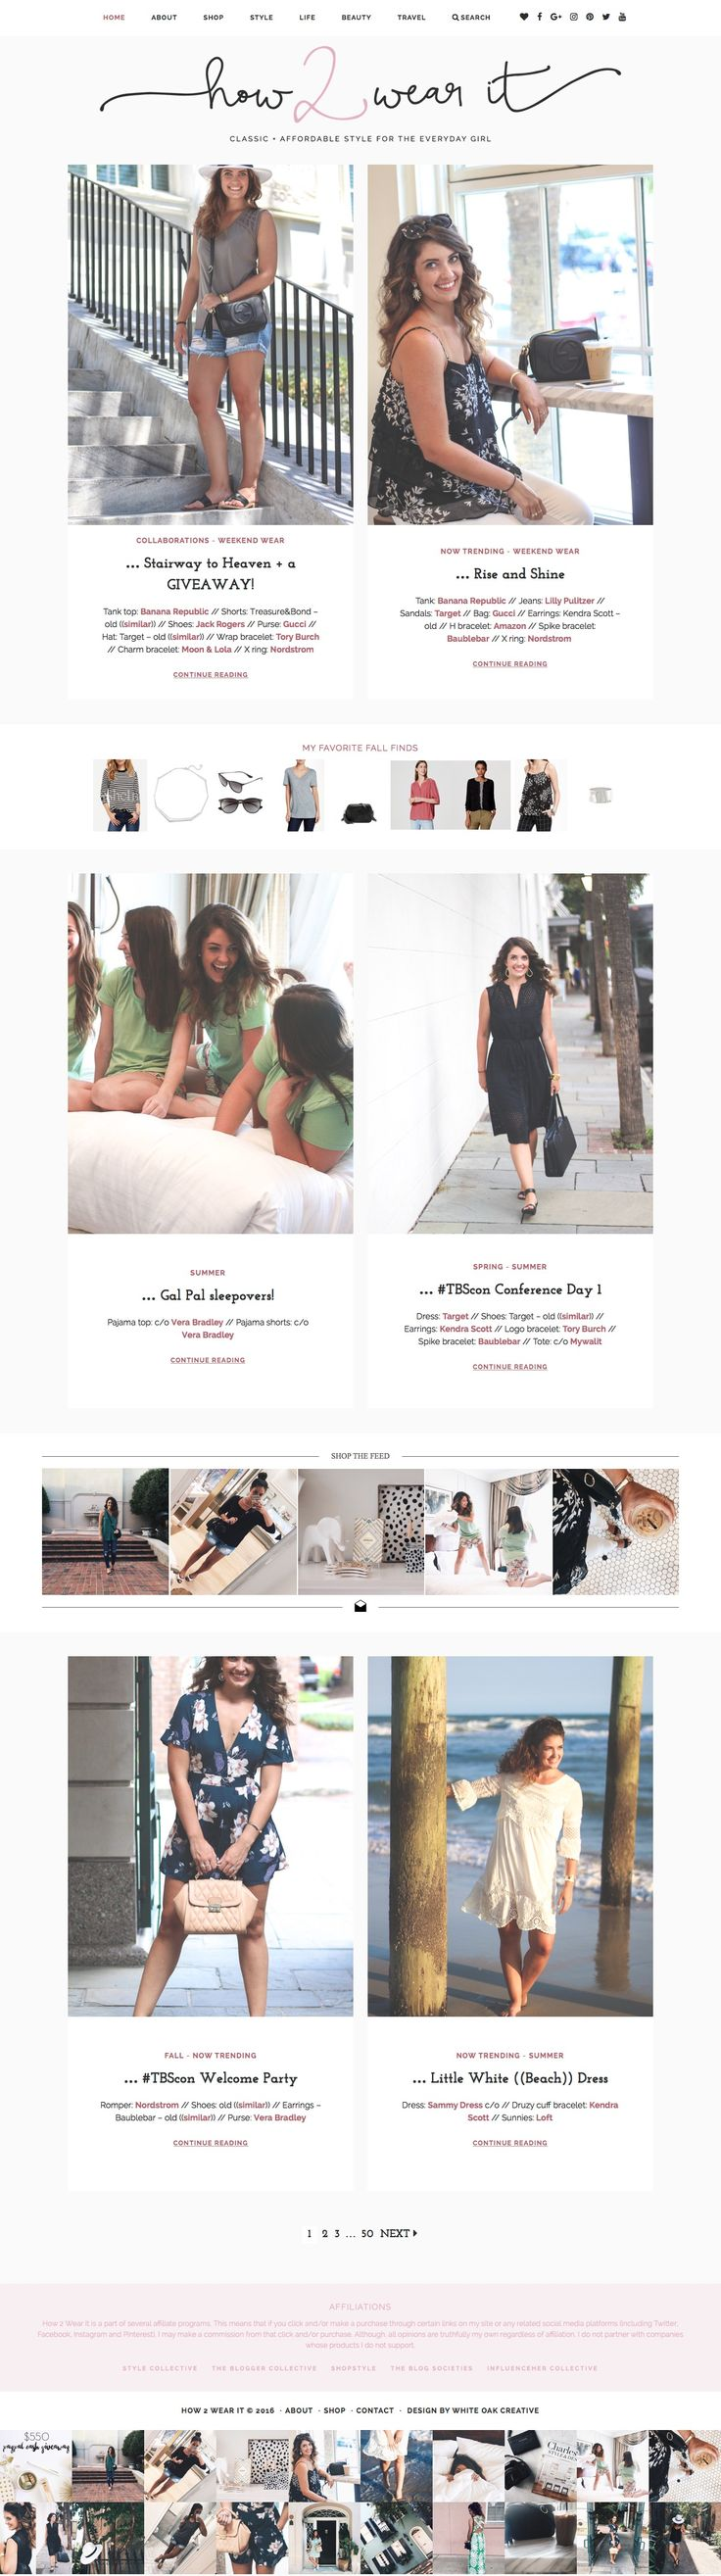 23 best Website Layouts images on Pinterest | Graphics ...